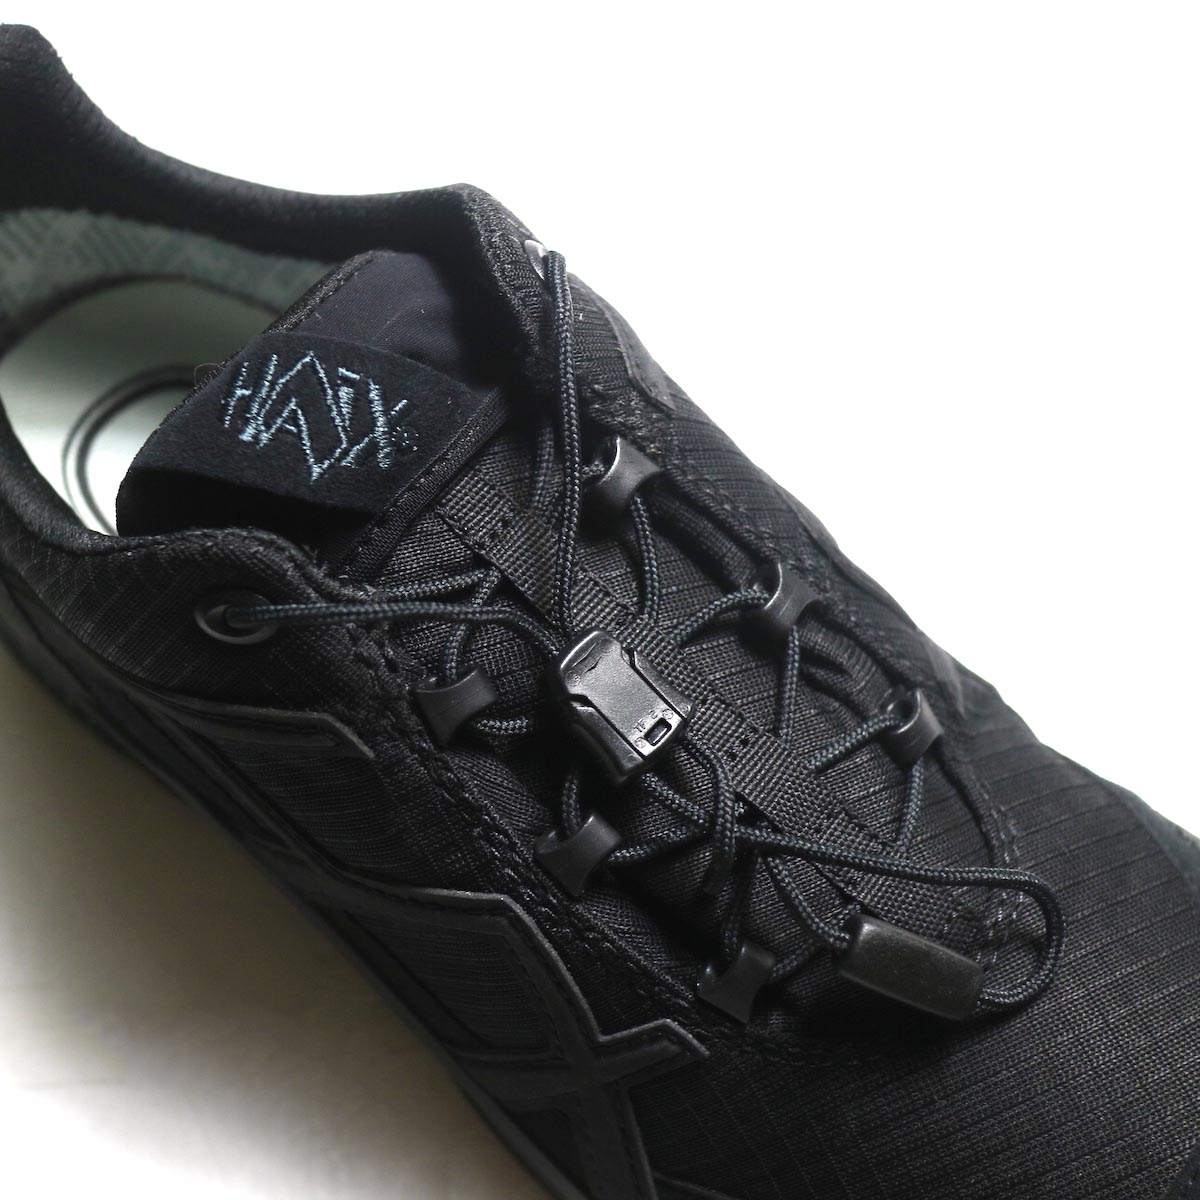 HAIX / BLACK EAGLE - ATHLETIC 2.1 GTX LOW (Black)ドローコード